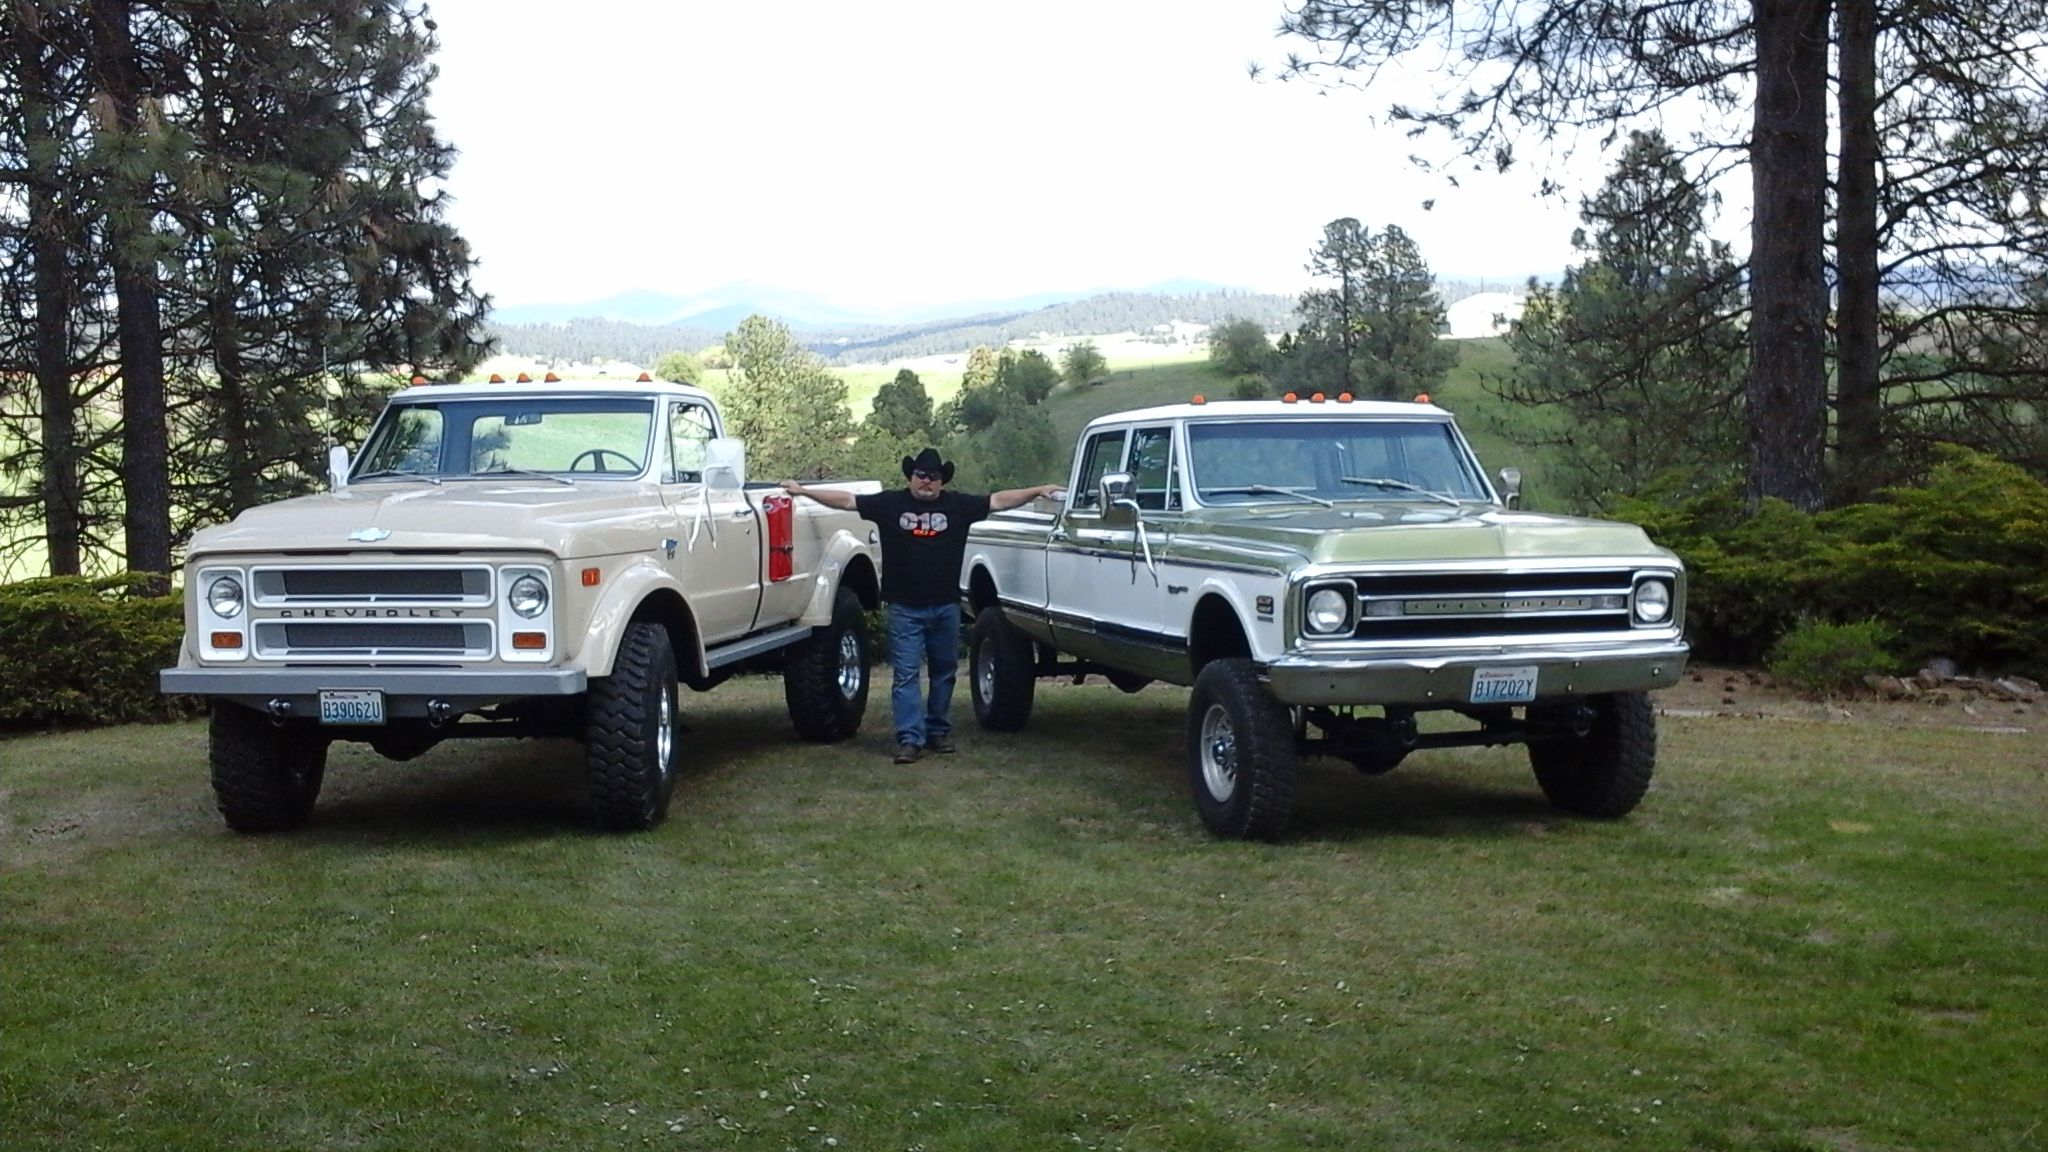 Two Chevy Creations By Rtech Fabrications 70 Crew Cab Cowboy 1976 Chevrolet And K50 Drill Sergeant Visit The Website Rtechfabricationscom